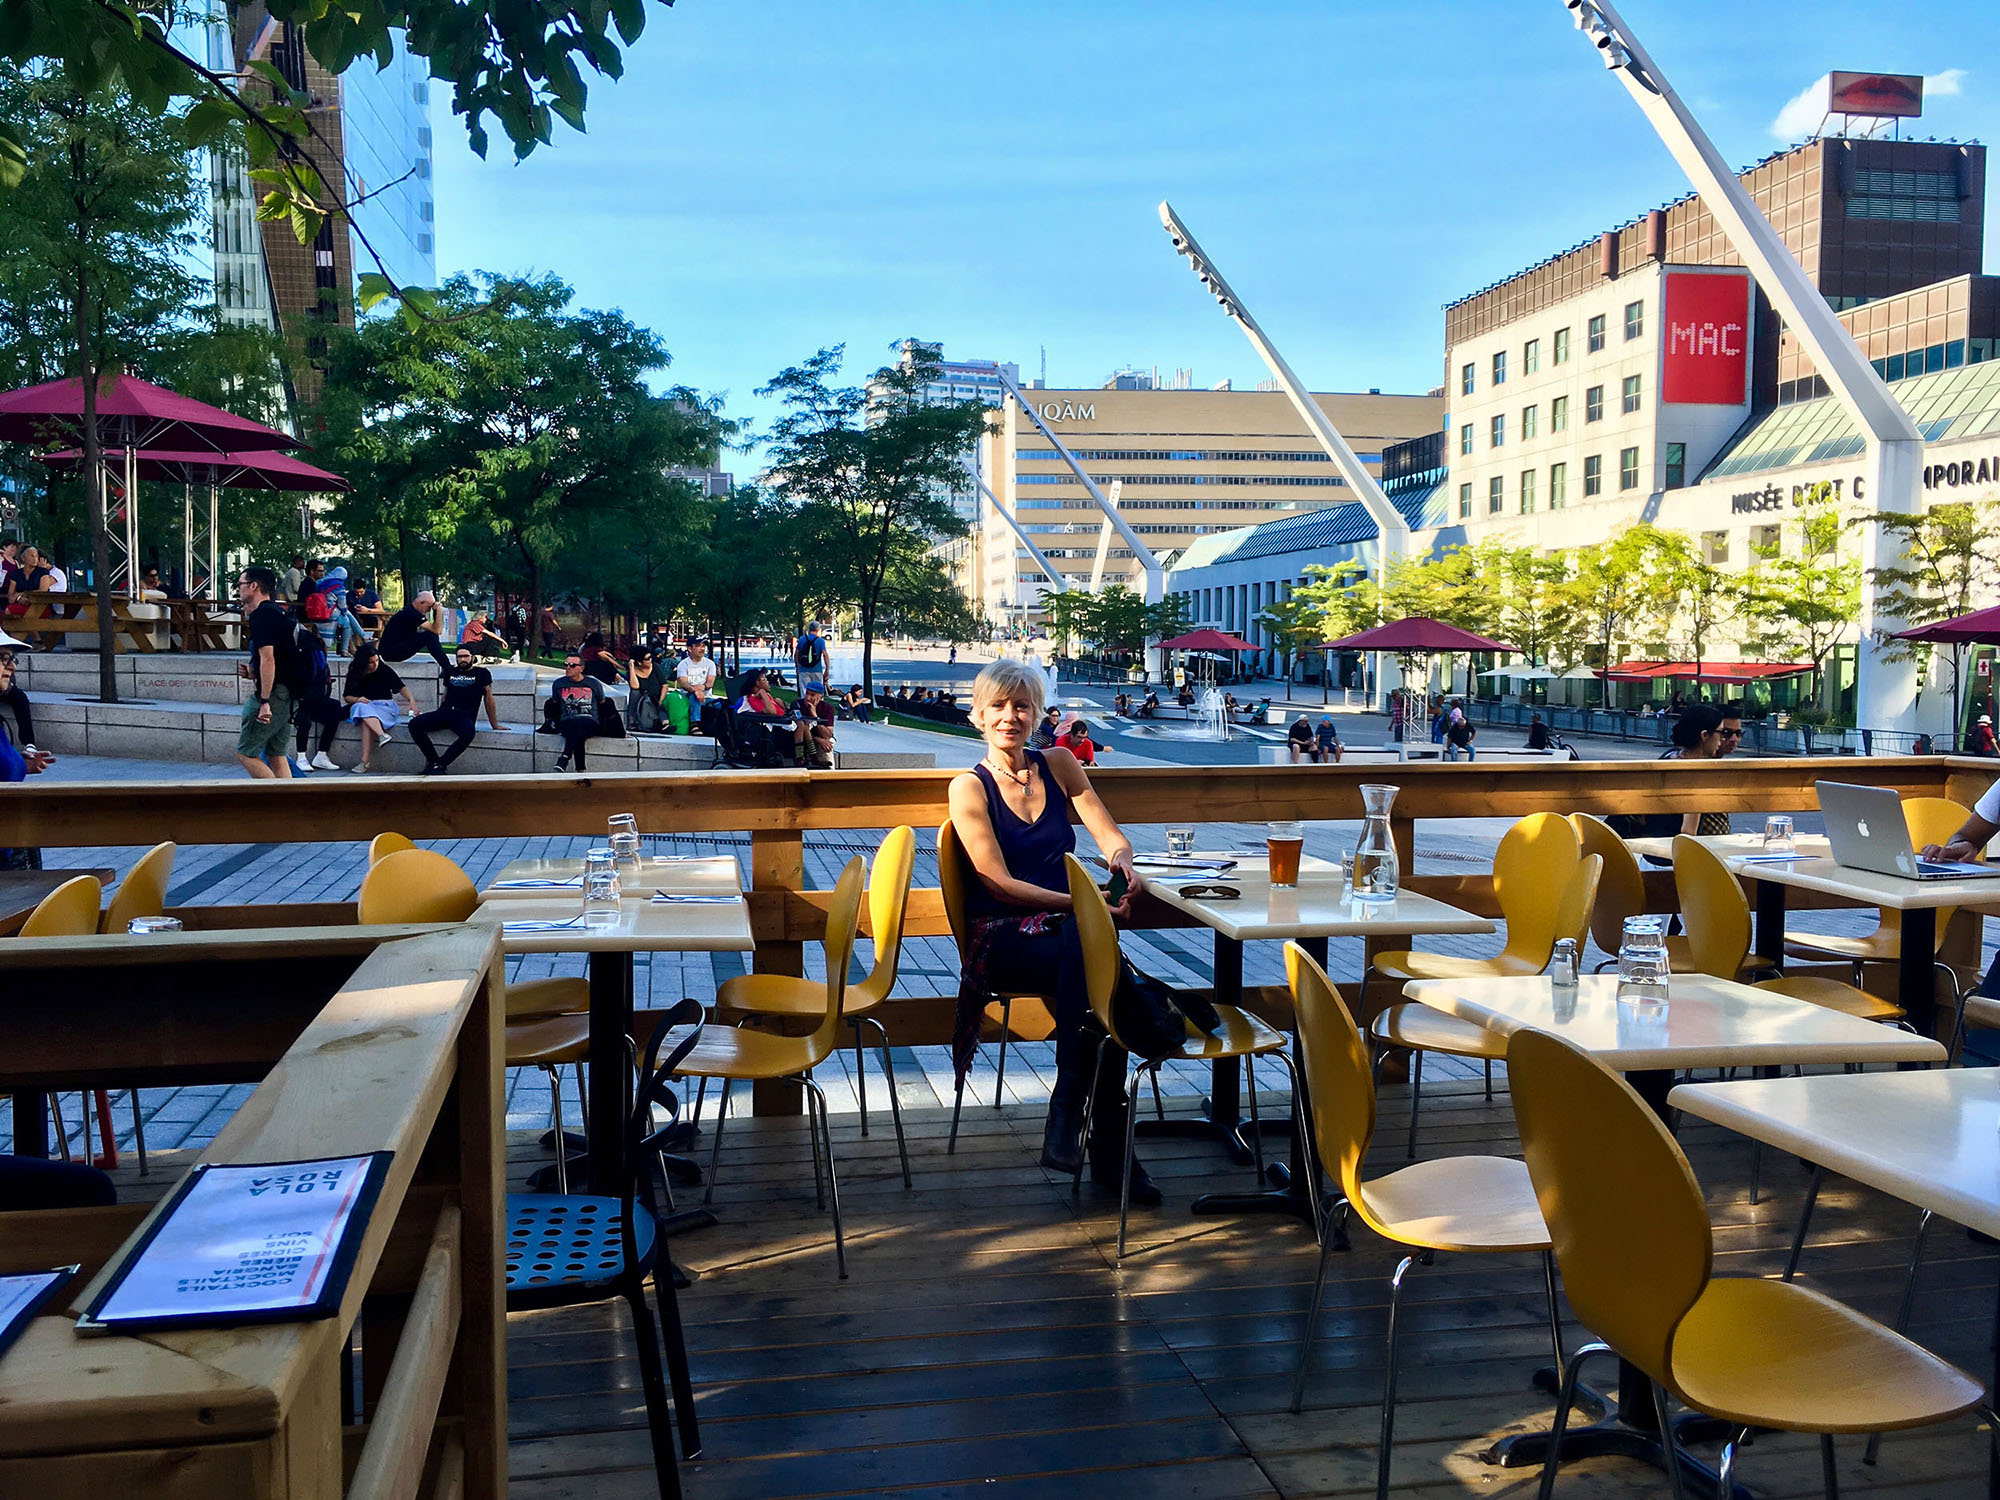 The Place des Arts is behind me and to the right. A perfect place for lunch!